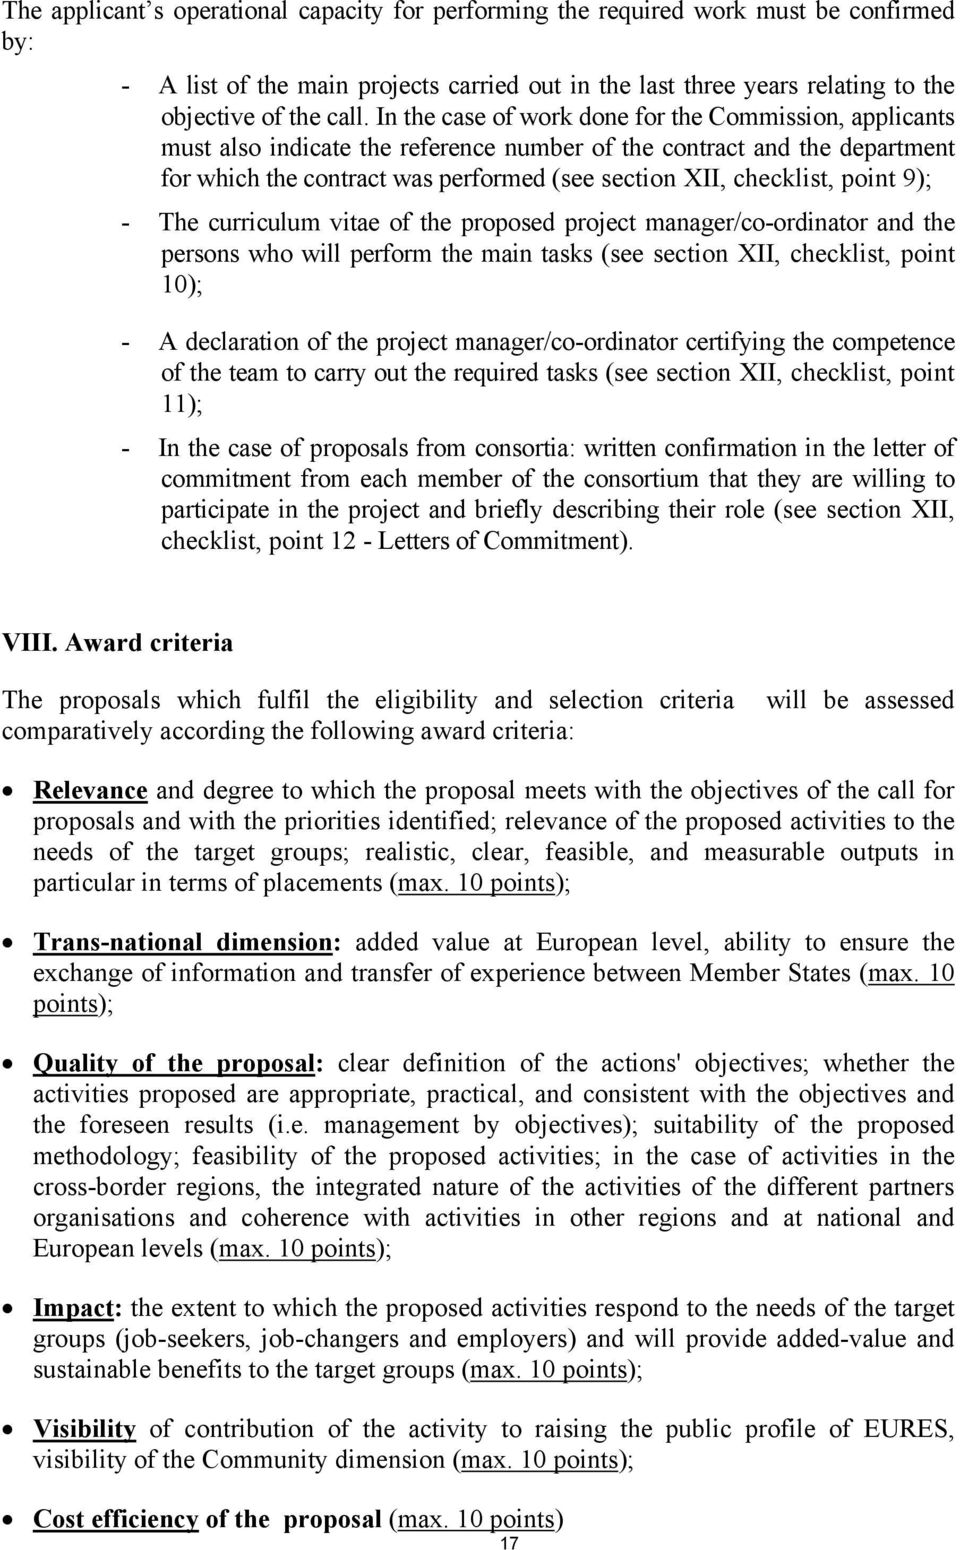 point 9); - The curriculum vitae of the proposed project manager/co-ordinator and the persons who will perform the main tasks (see section XII, checklist, point 10); - A declaration of the project